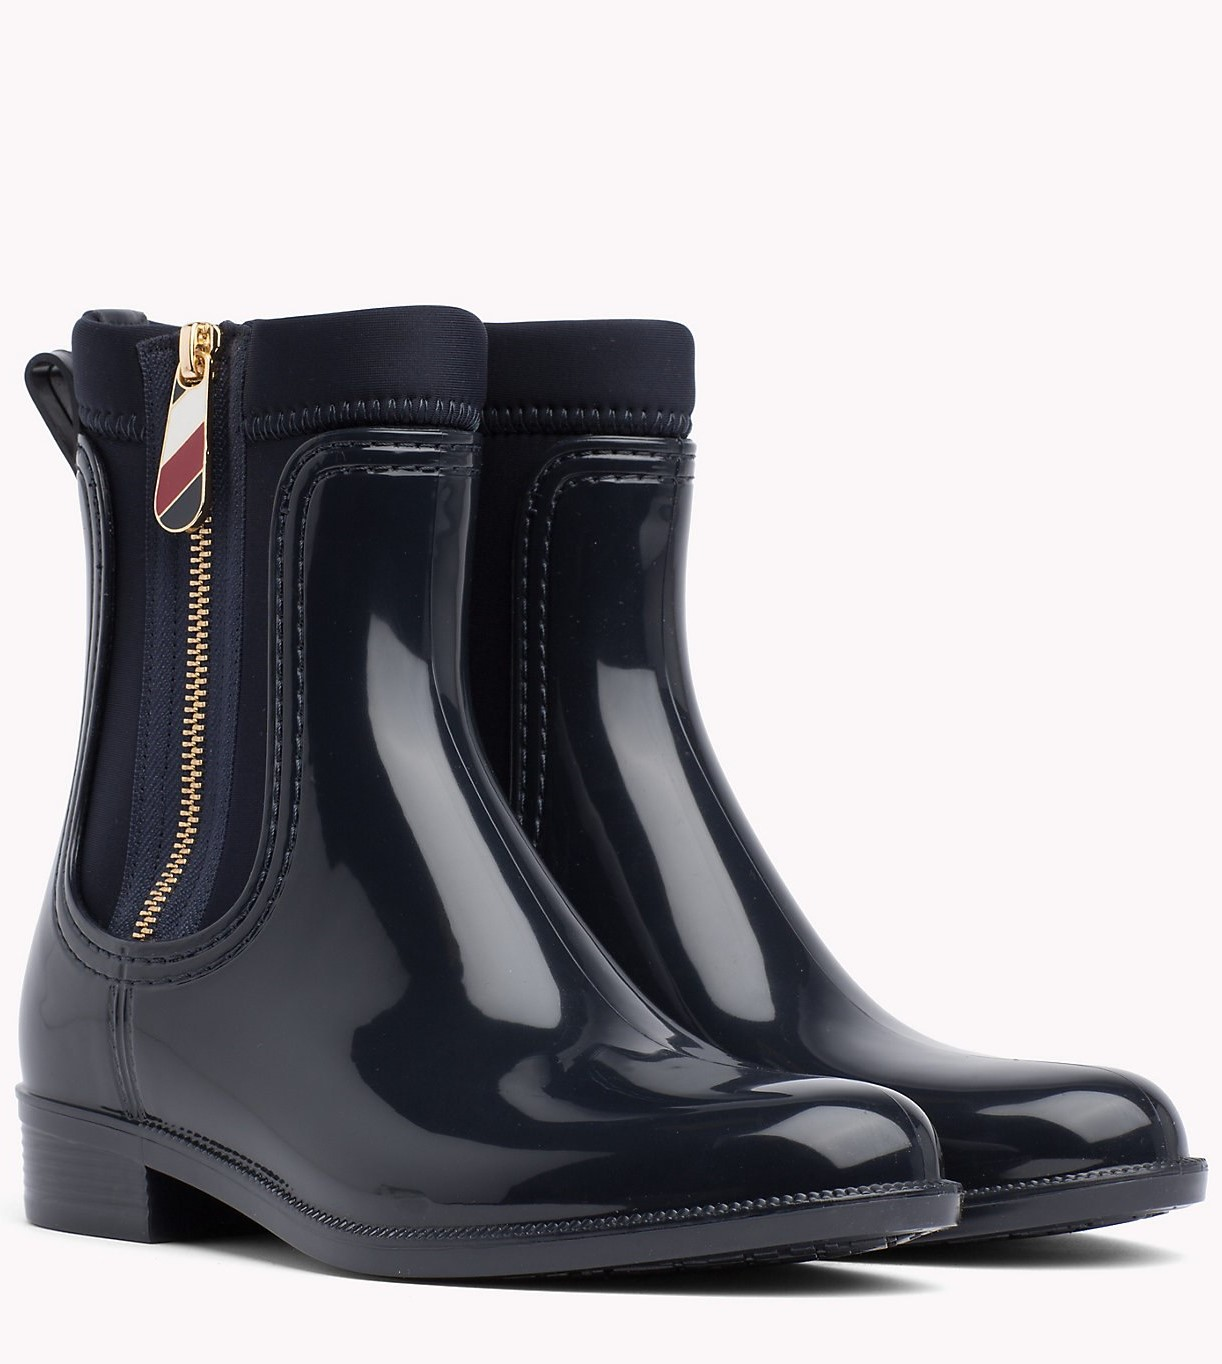 7a9942e2b753 Tommy Hilfiger Dark Blue Boots Material Mix Rain Boot - Women´s ...